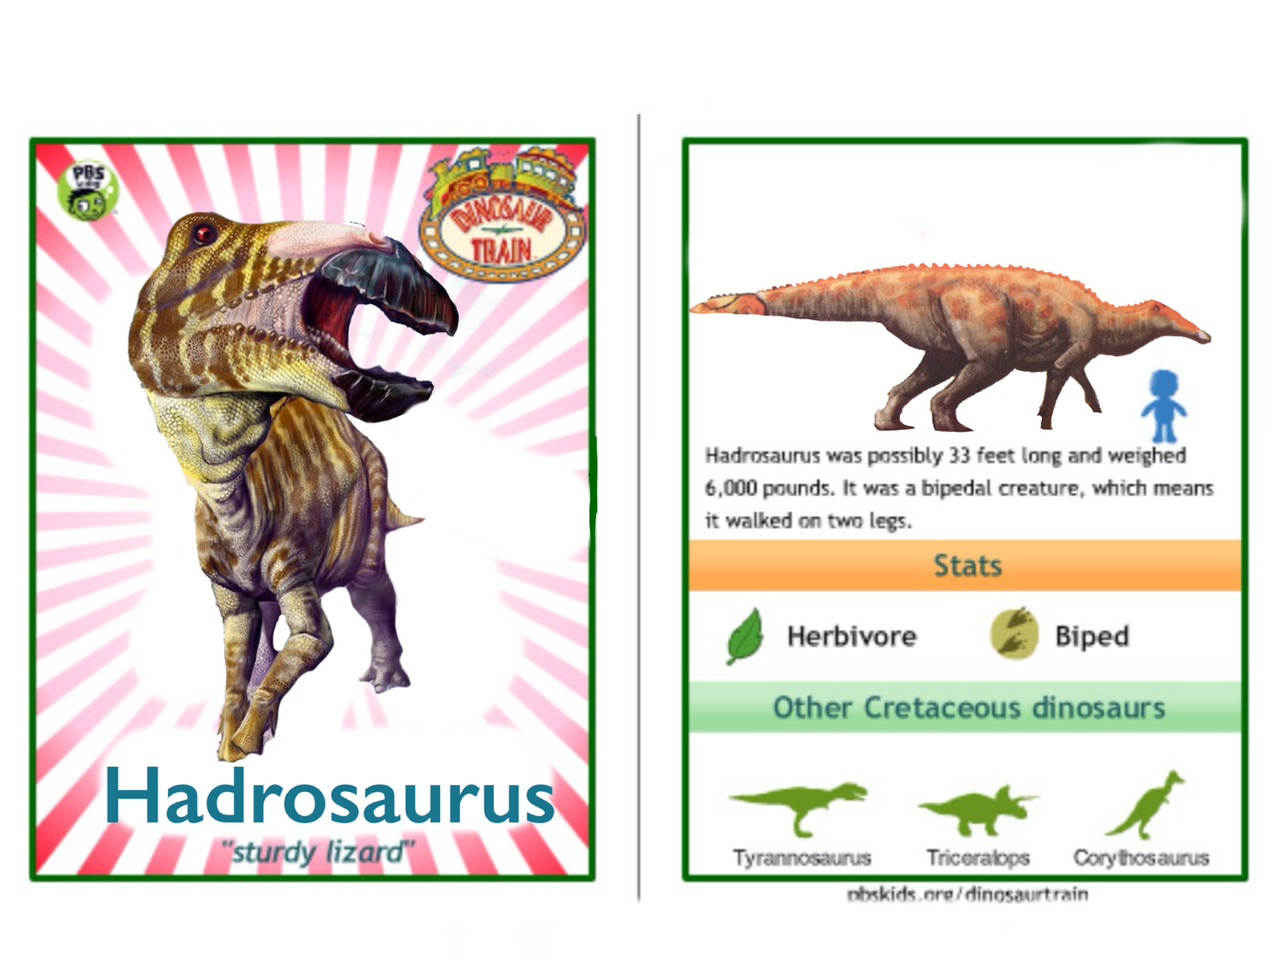 dinosaur train hadrosaurus card by vespisaurus dinosaur train hadrosaurus card by vespisaurus